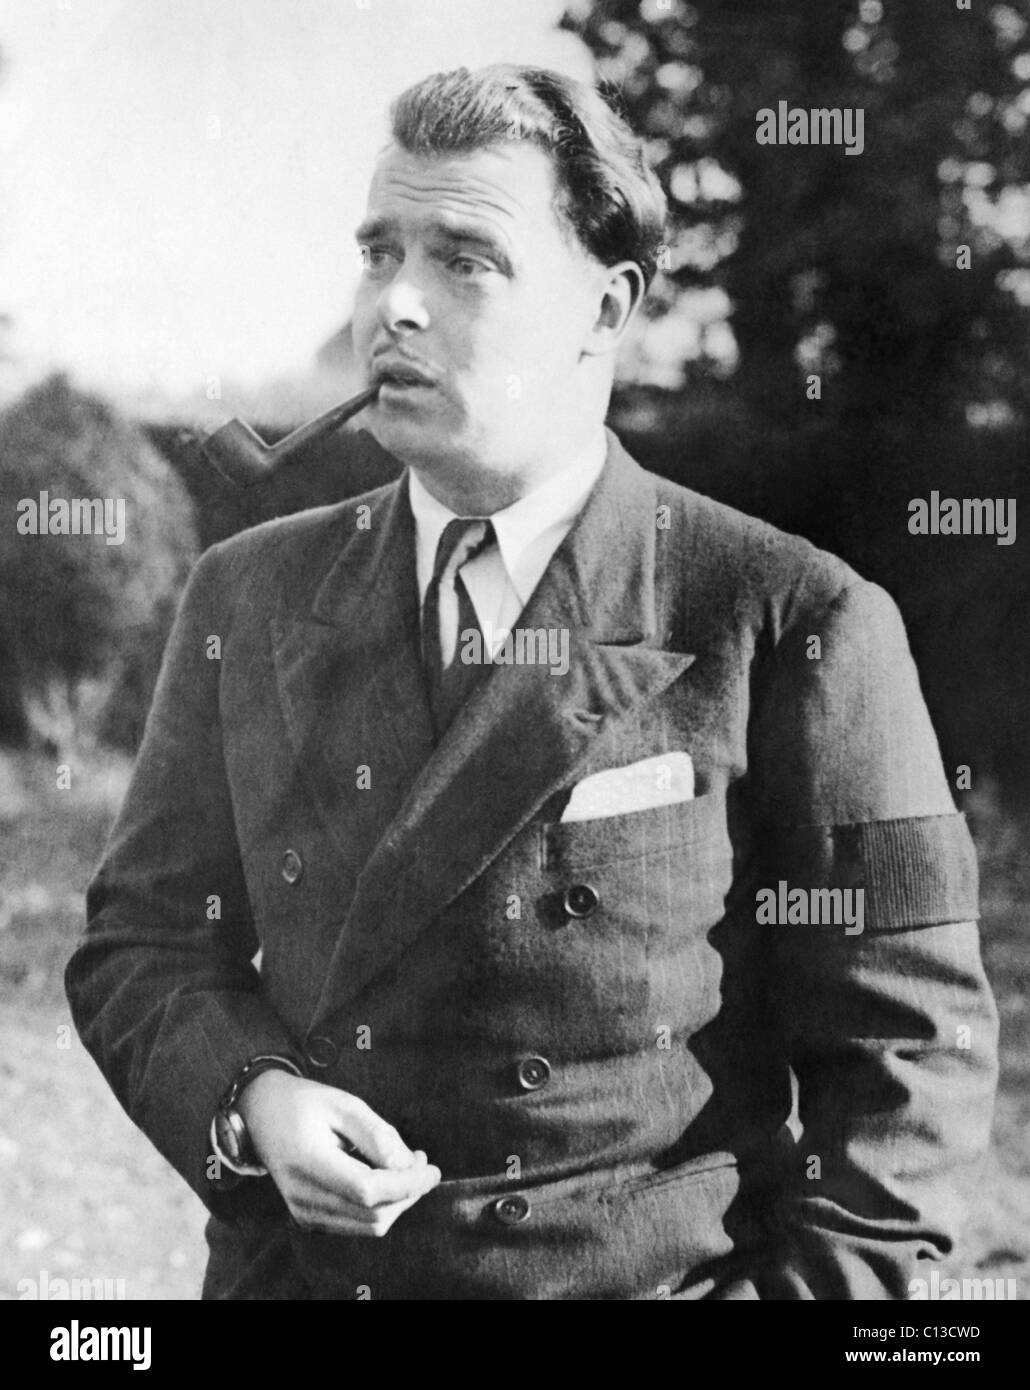 Russian Royalty. Pretender to the Russian throne Grand Duke Vladimir Cyrillovich of Russia, circa 1930s. - Stock Image